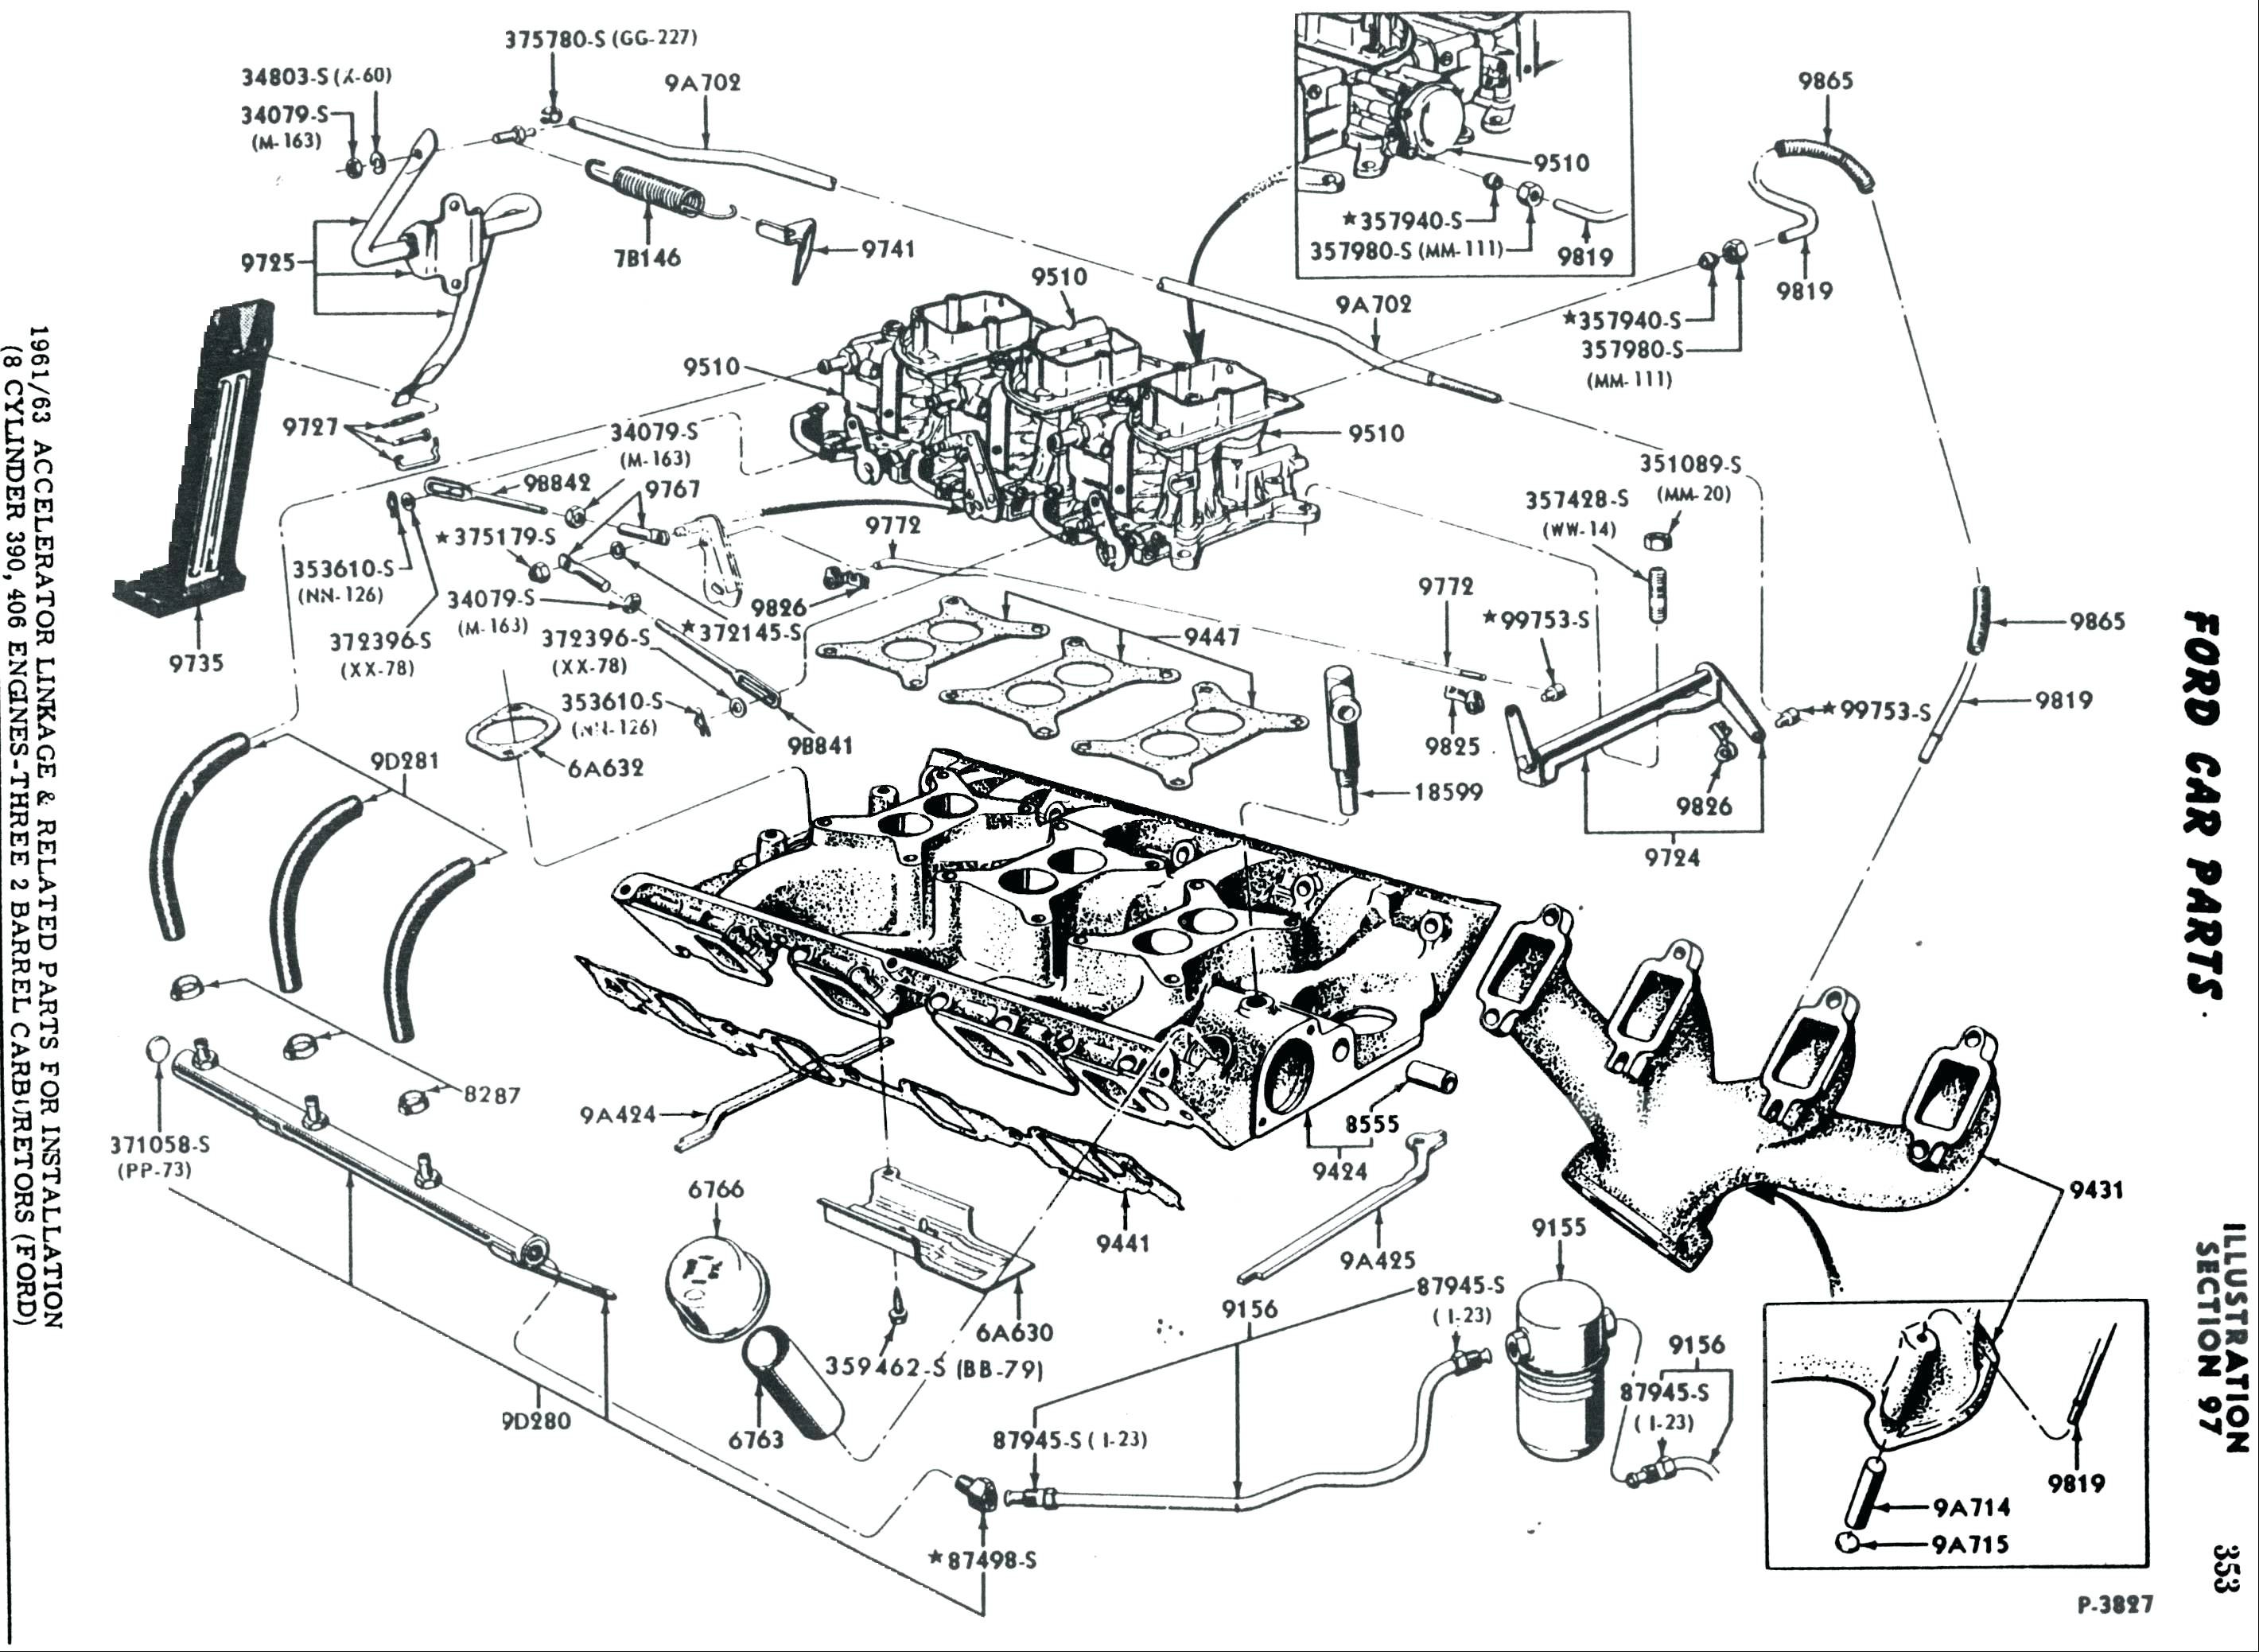 Camry Engine Diagram 2009 toyota Camry Engine Diagram – Nickfayosub Of Camry  Engine Diagram Electrical Wiring